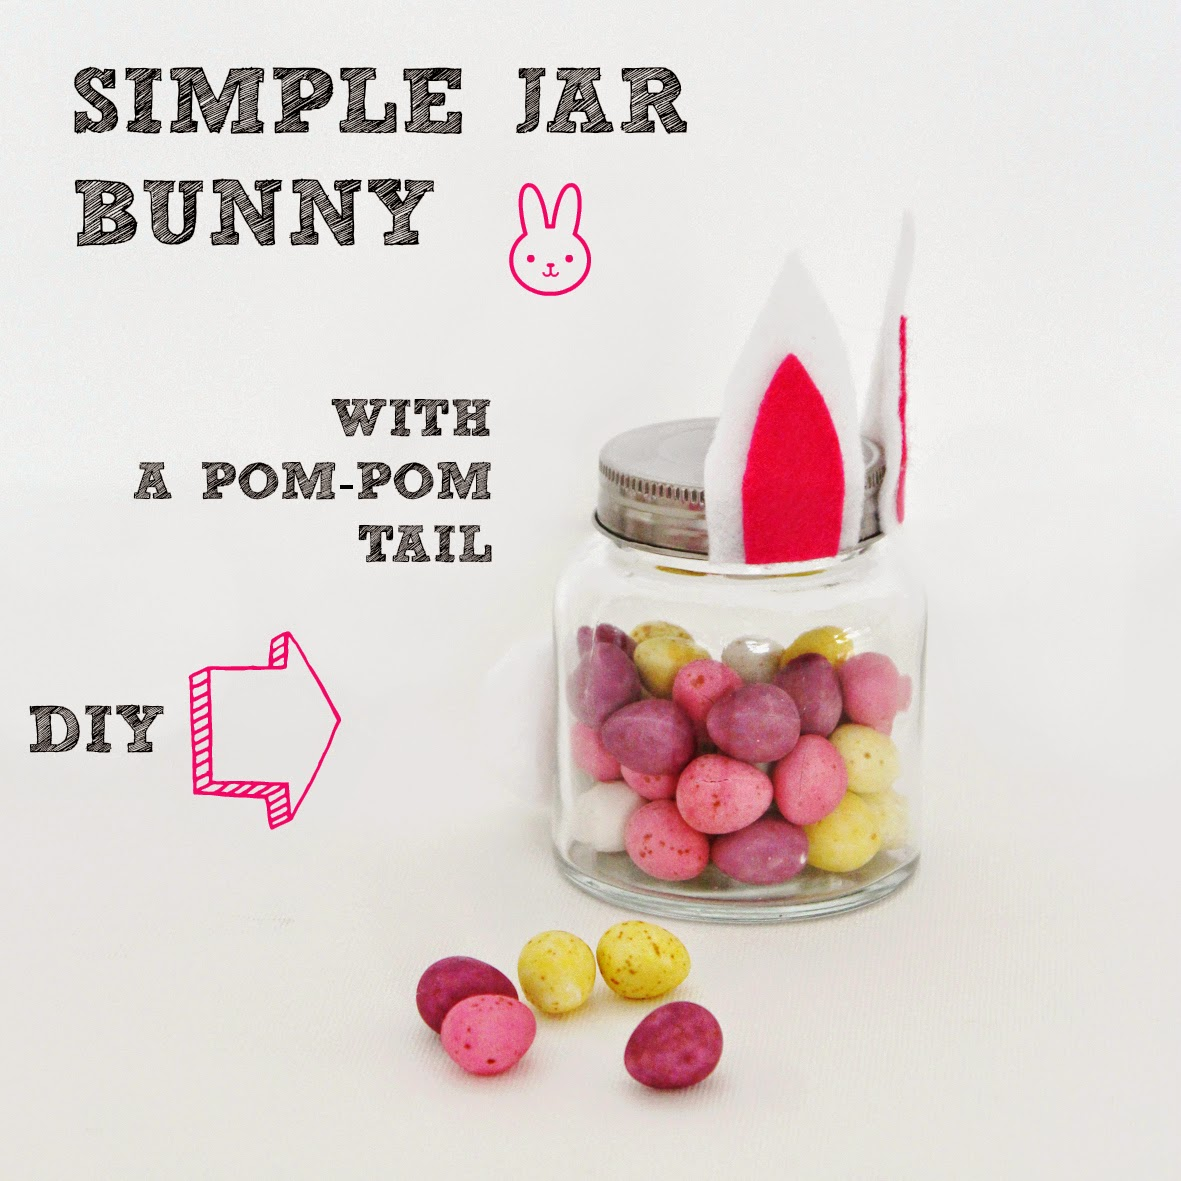 http://froggooseandbear.blogspot.com.au/2014/04/how-to-make-adorably-simple-easter-jar.html